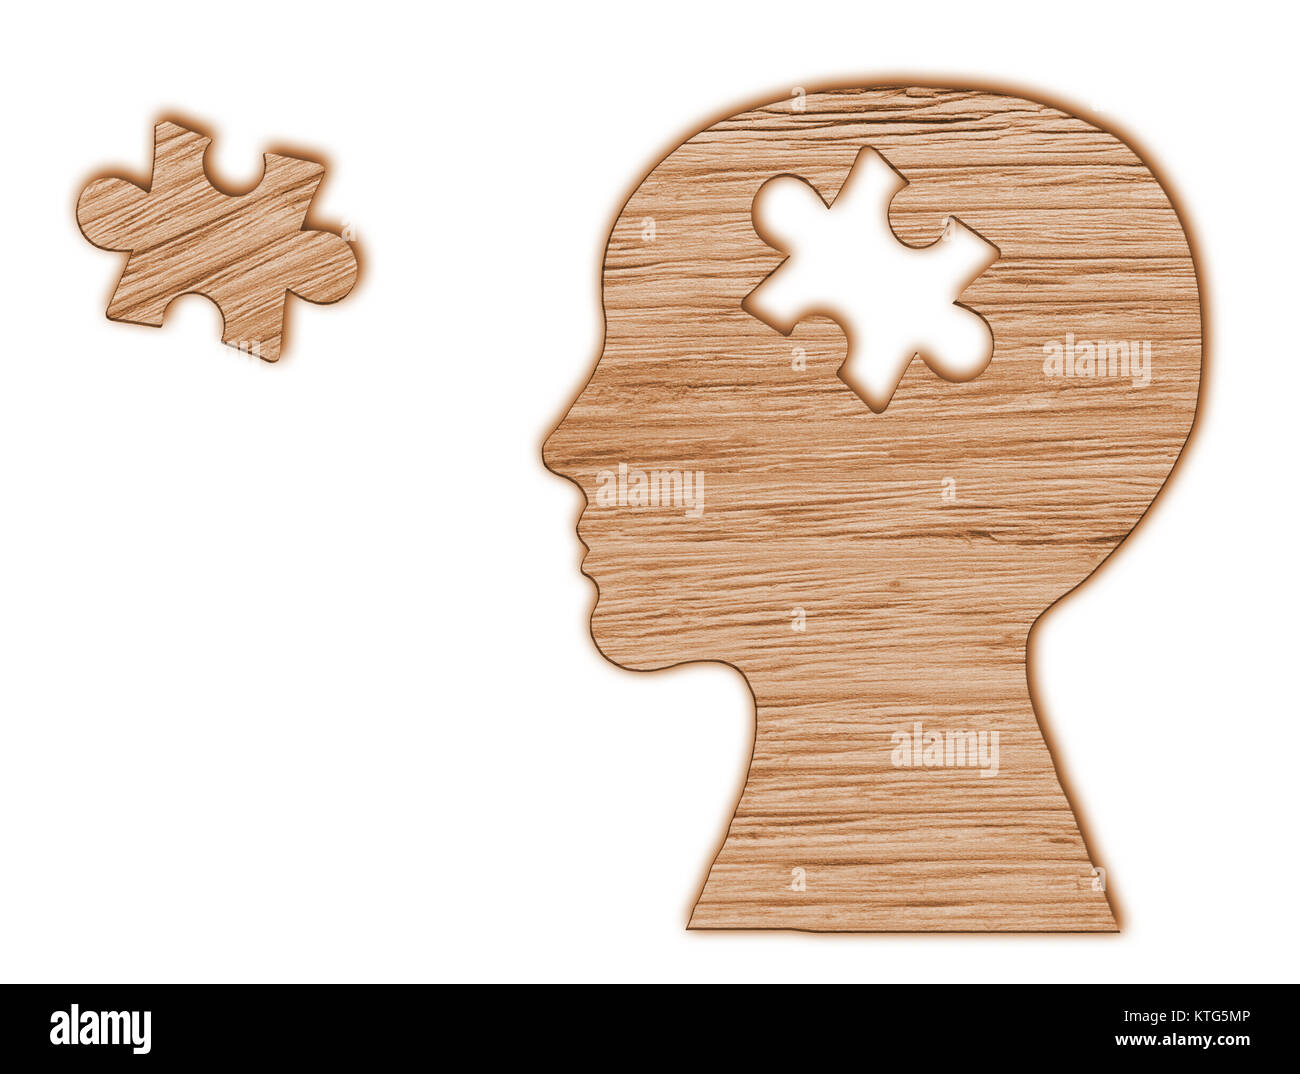 Riddell stock symbol images symbol and sign ideas mental patient cut out stock images pictures alamy mental health symbol human head silhouette with a biocorpaavc Gallery